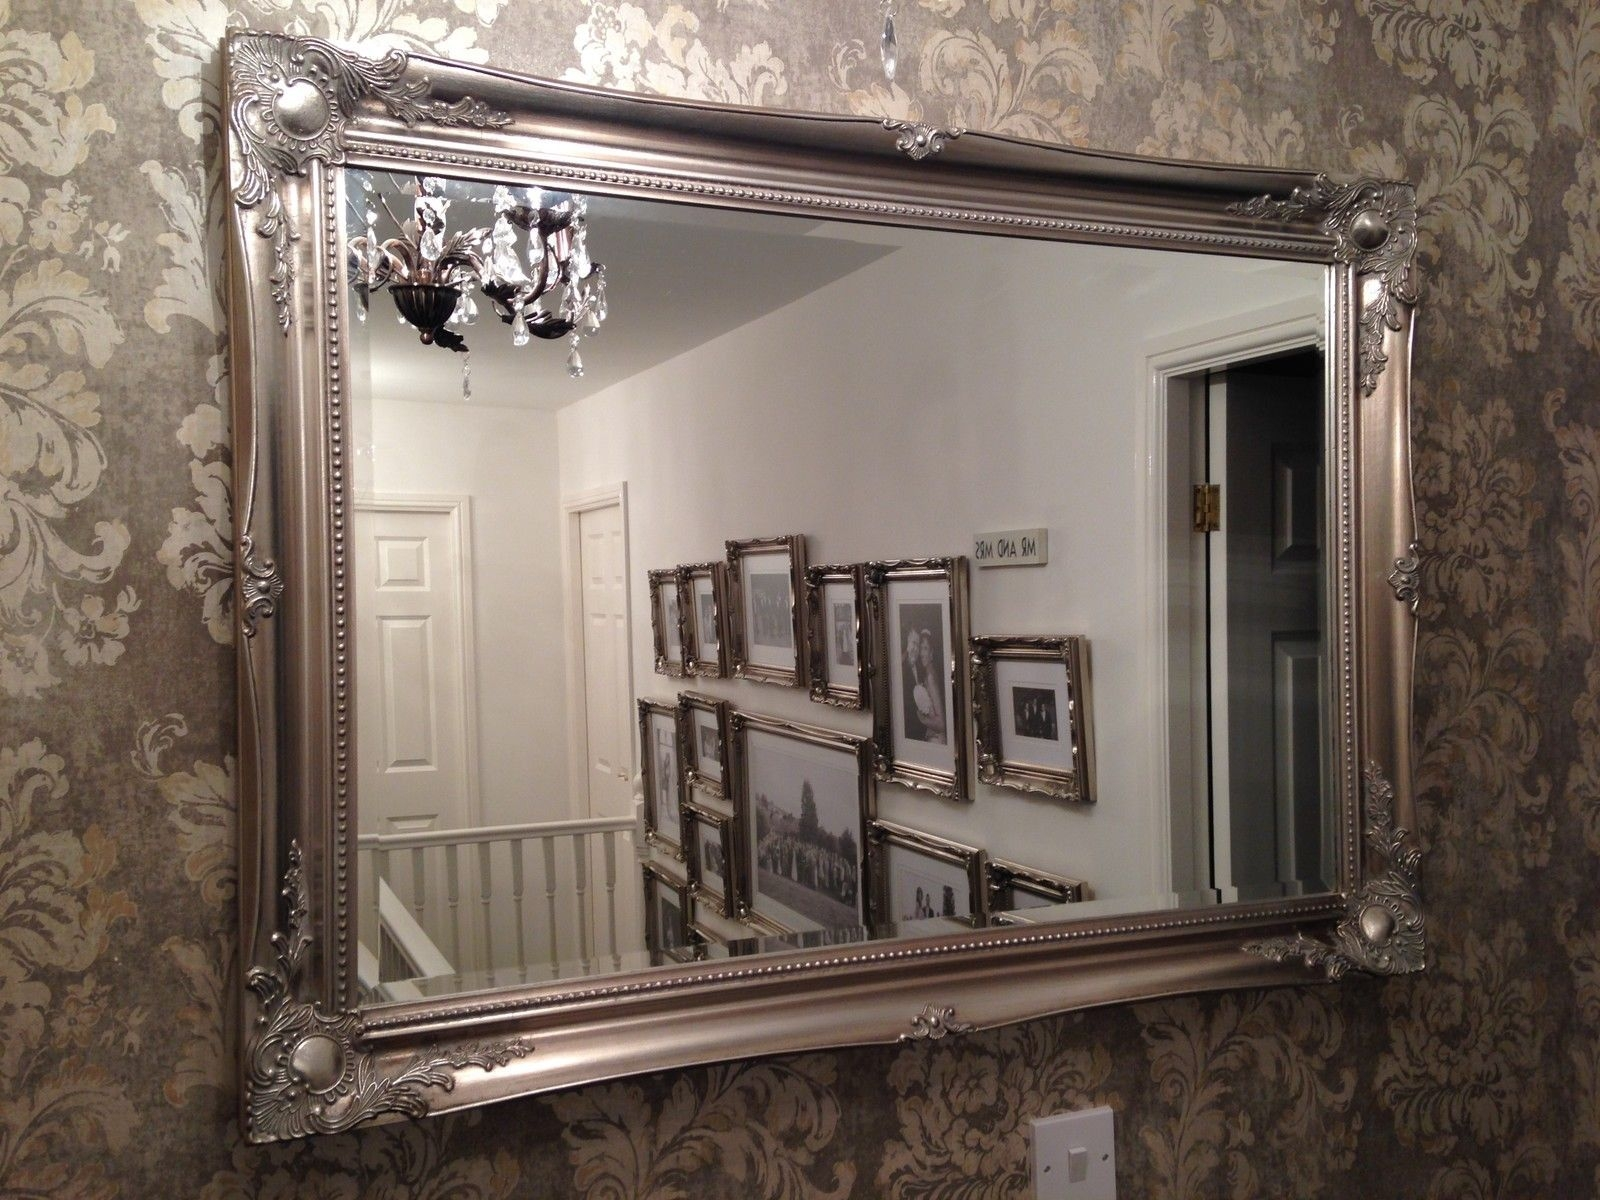 Large Antique Silver Shab Chic Ornate Decorative Over Mantle Intended For Large Antique Silver Mirror (View 6 of 15)